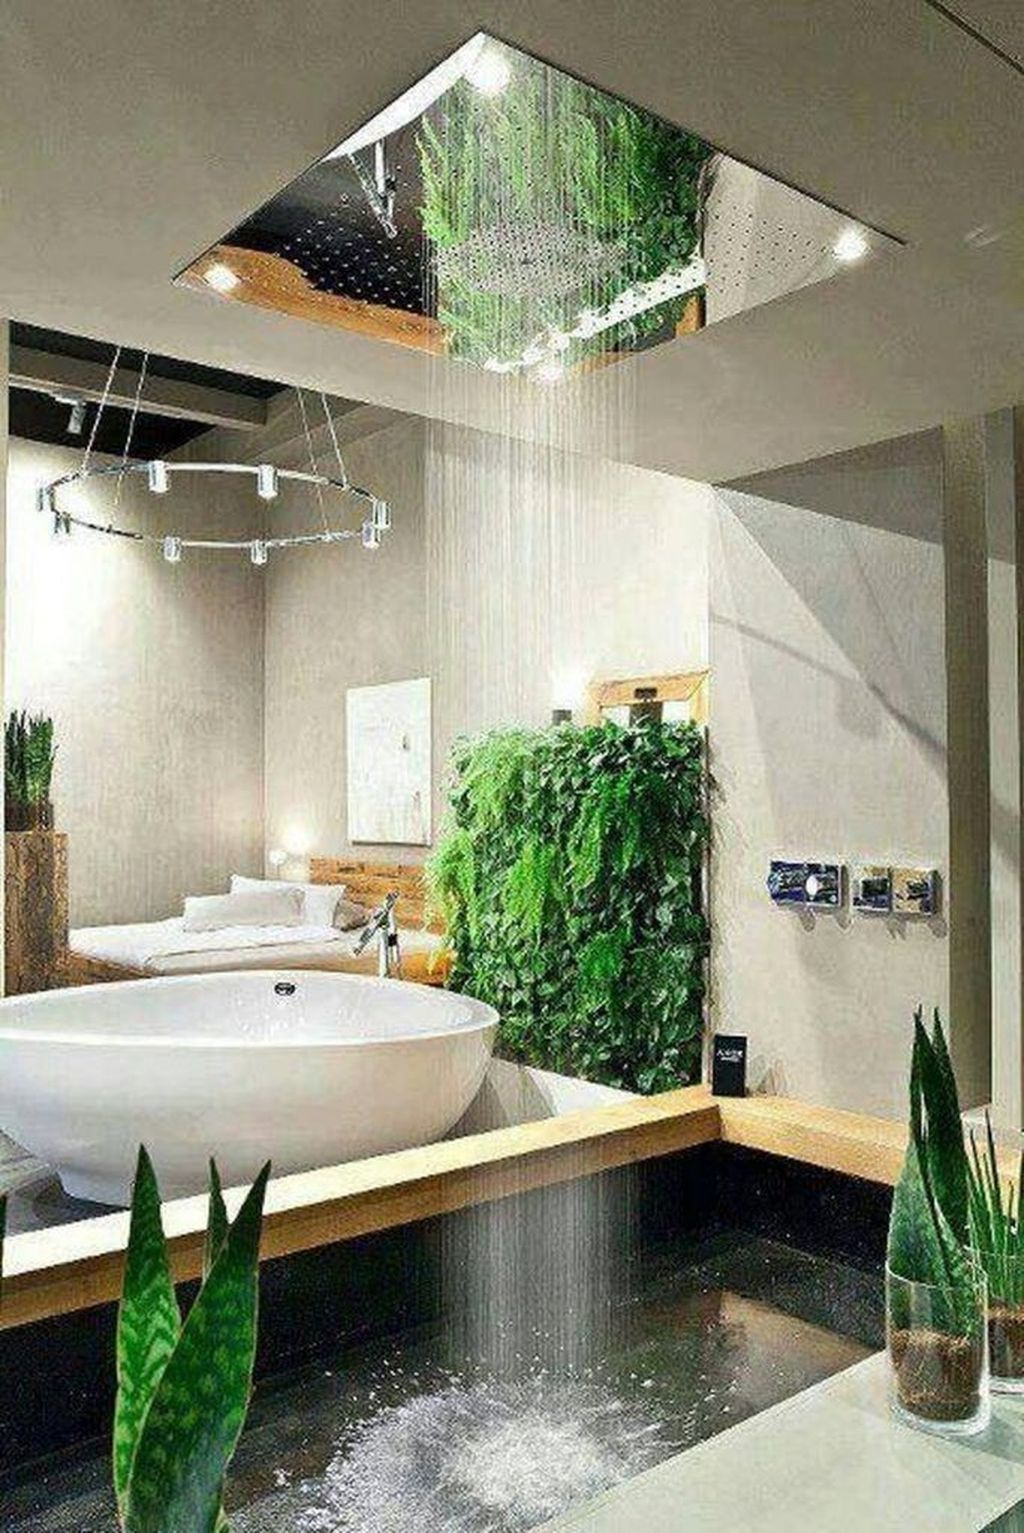 Inspiring Jungle Bathroom Decor Ideas 31